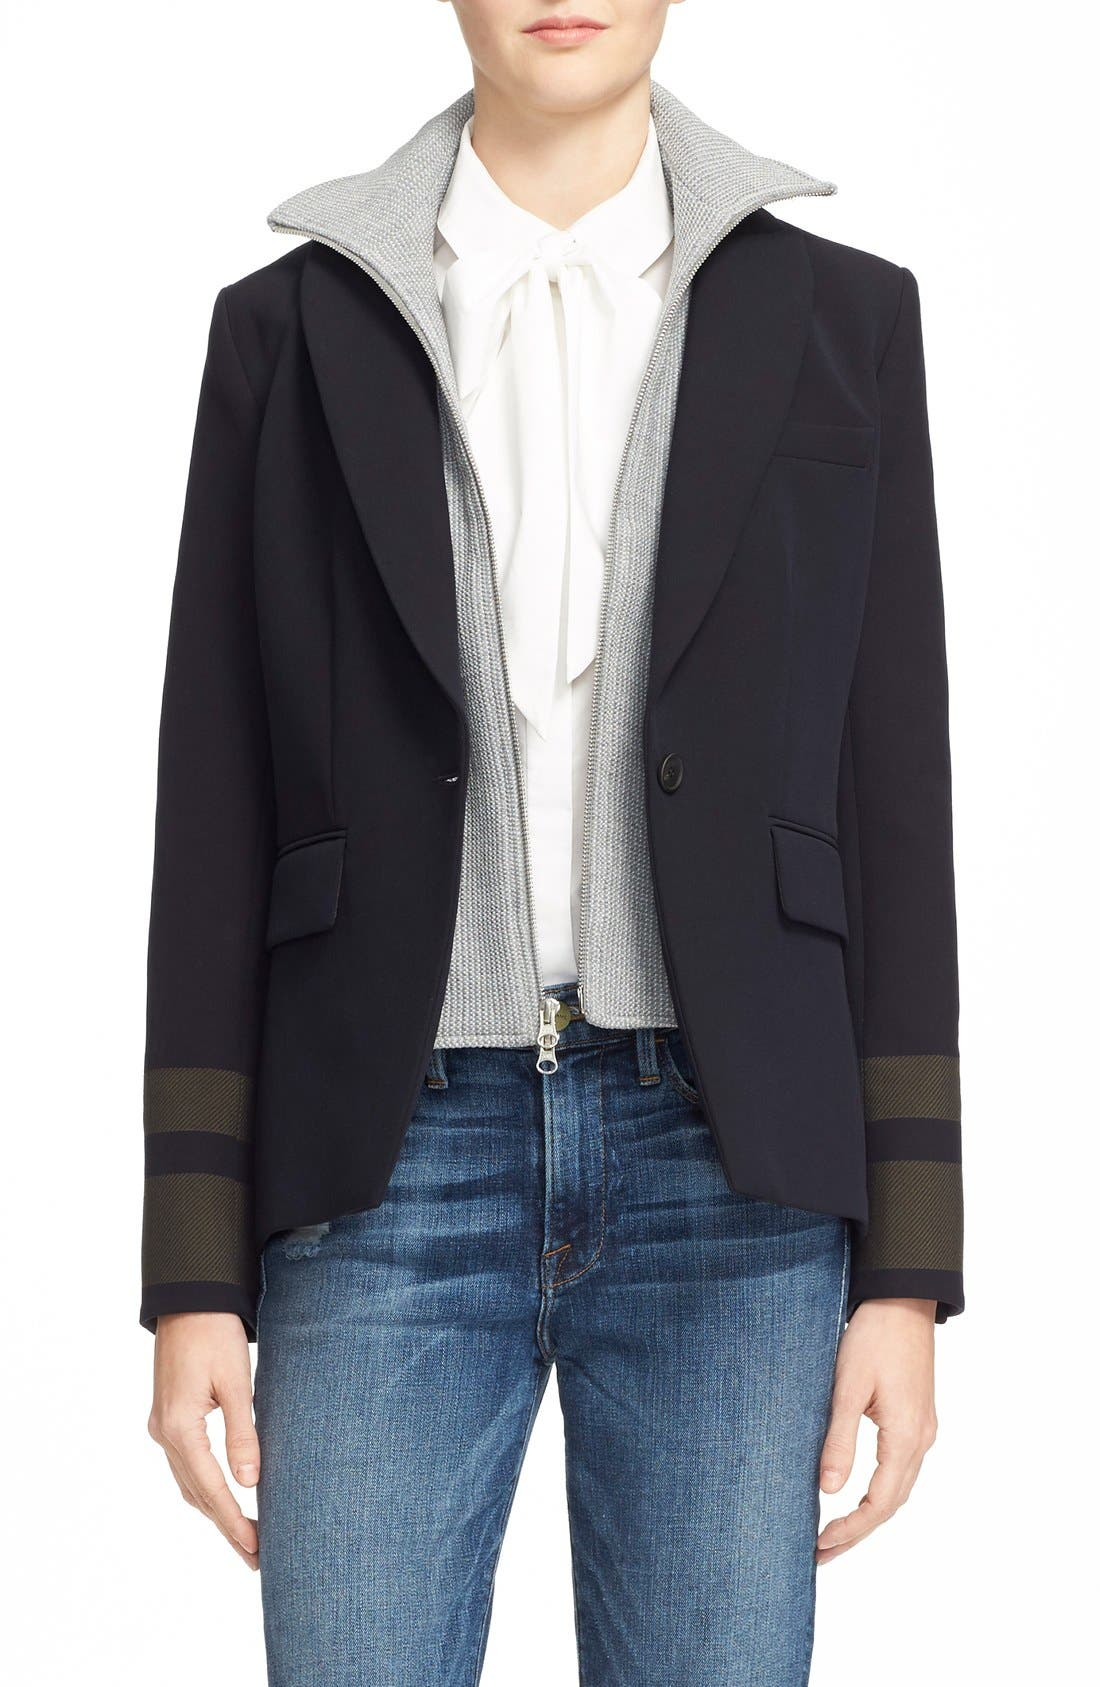 Cutaway Jacket with Removable Knit Dickey,                         Main,                         color, Navy/ Army